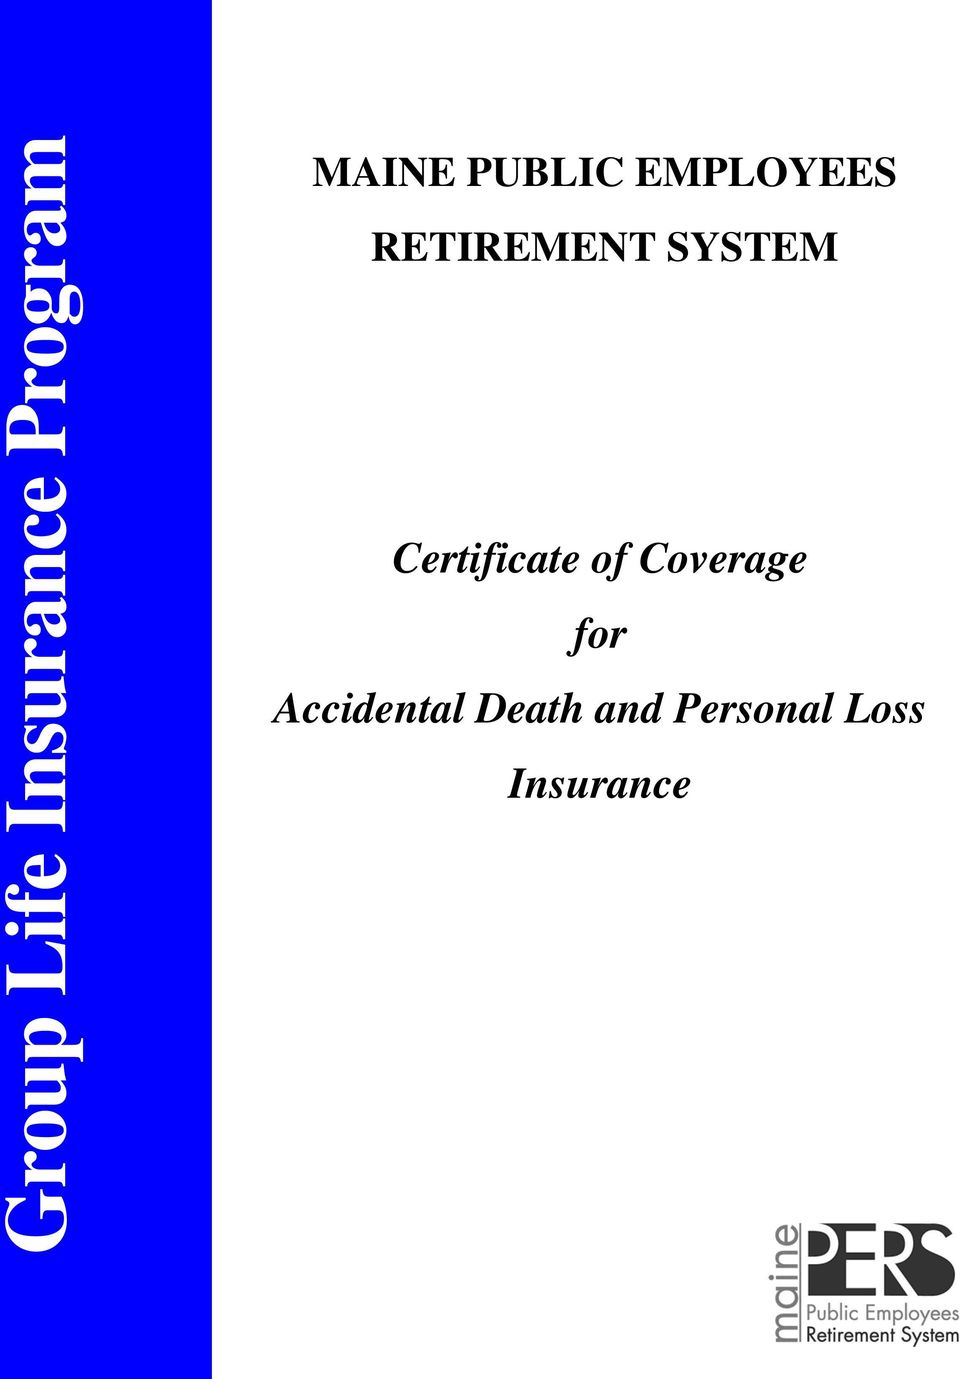 Certificate of Coverage for